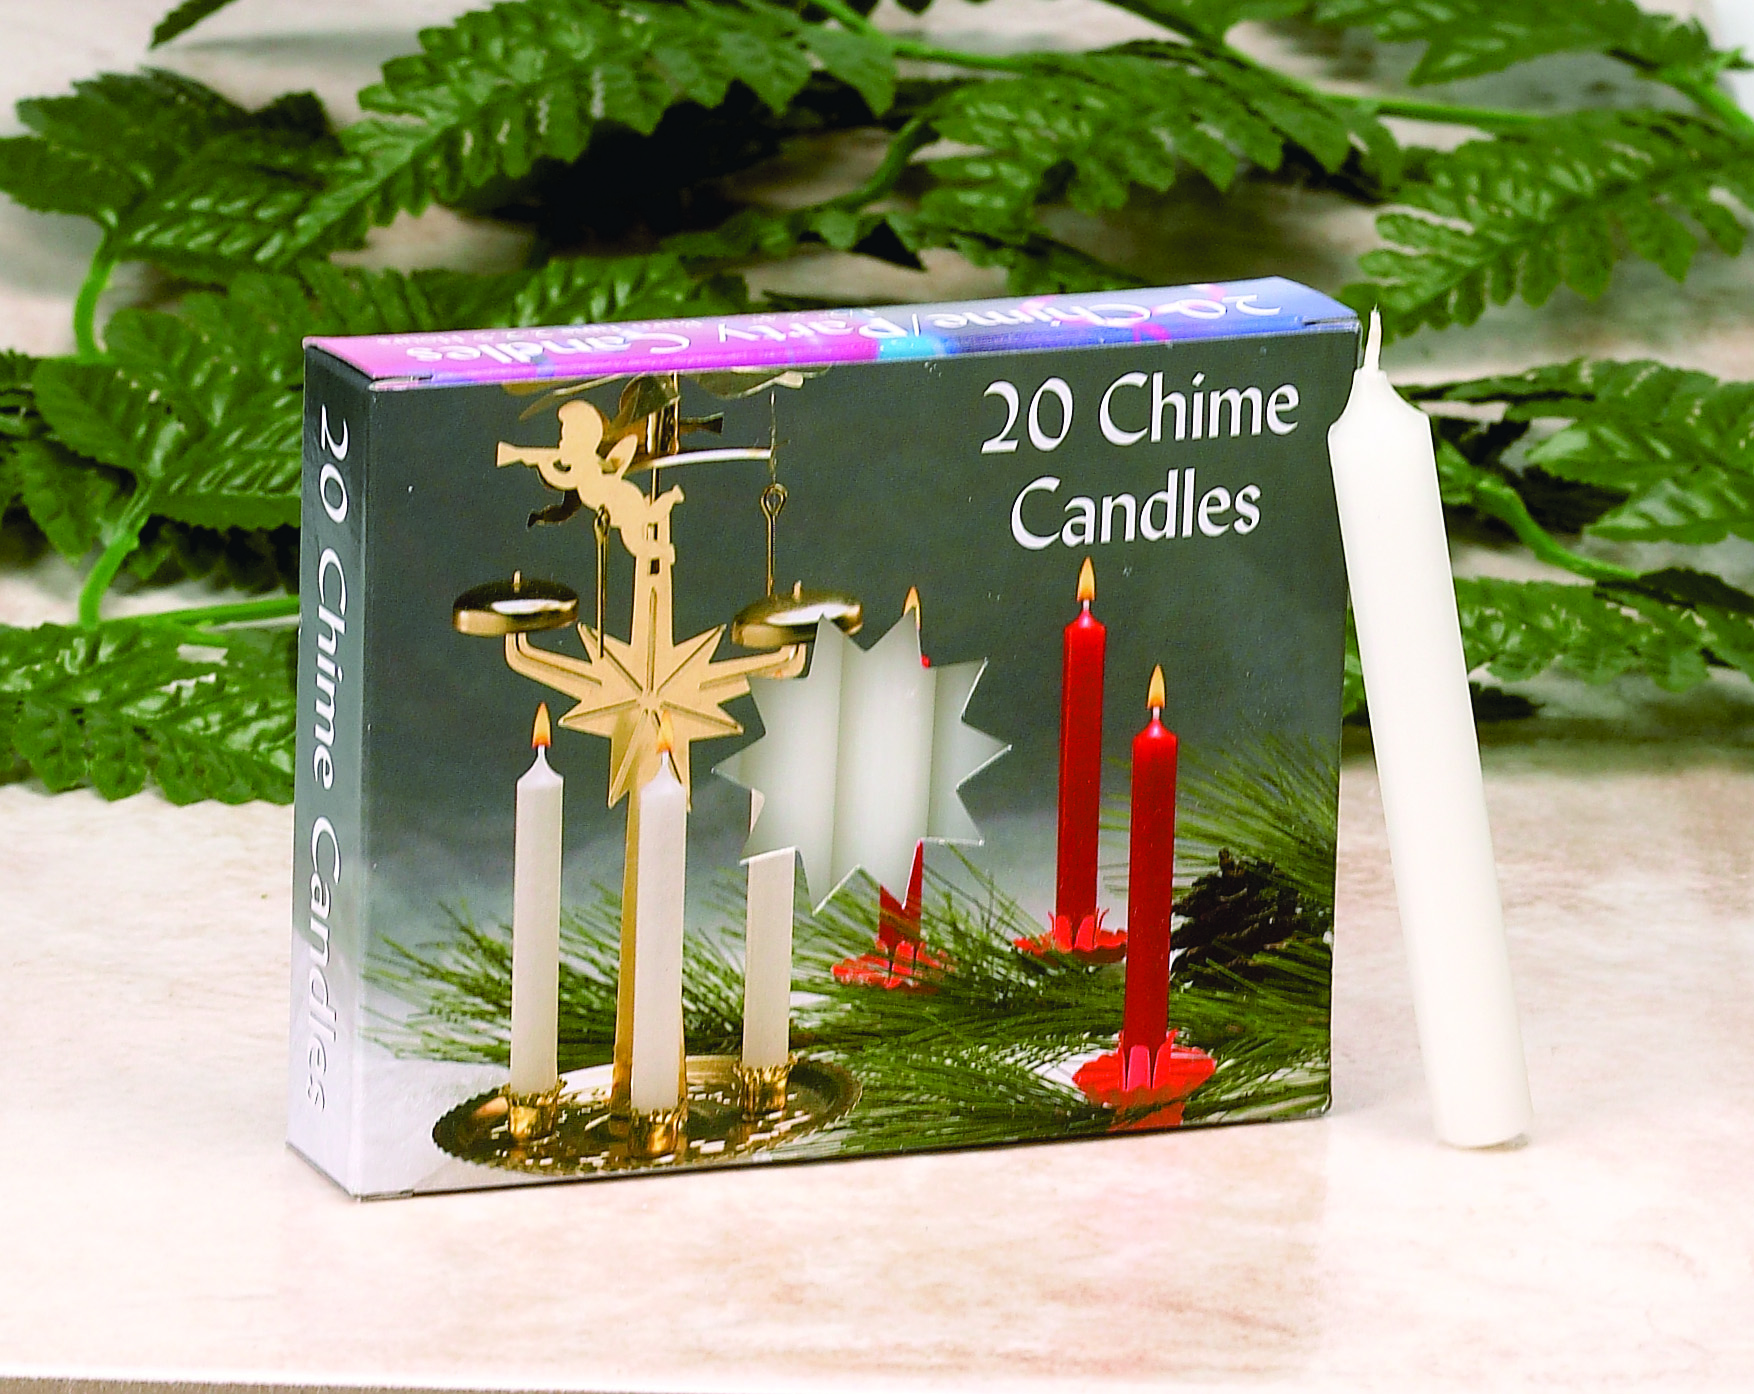 C1123WT/10 WHITE CHIME CANDLES- 10 BX/20